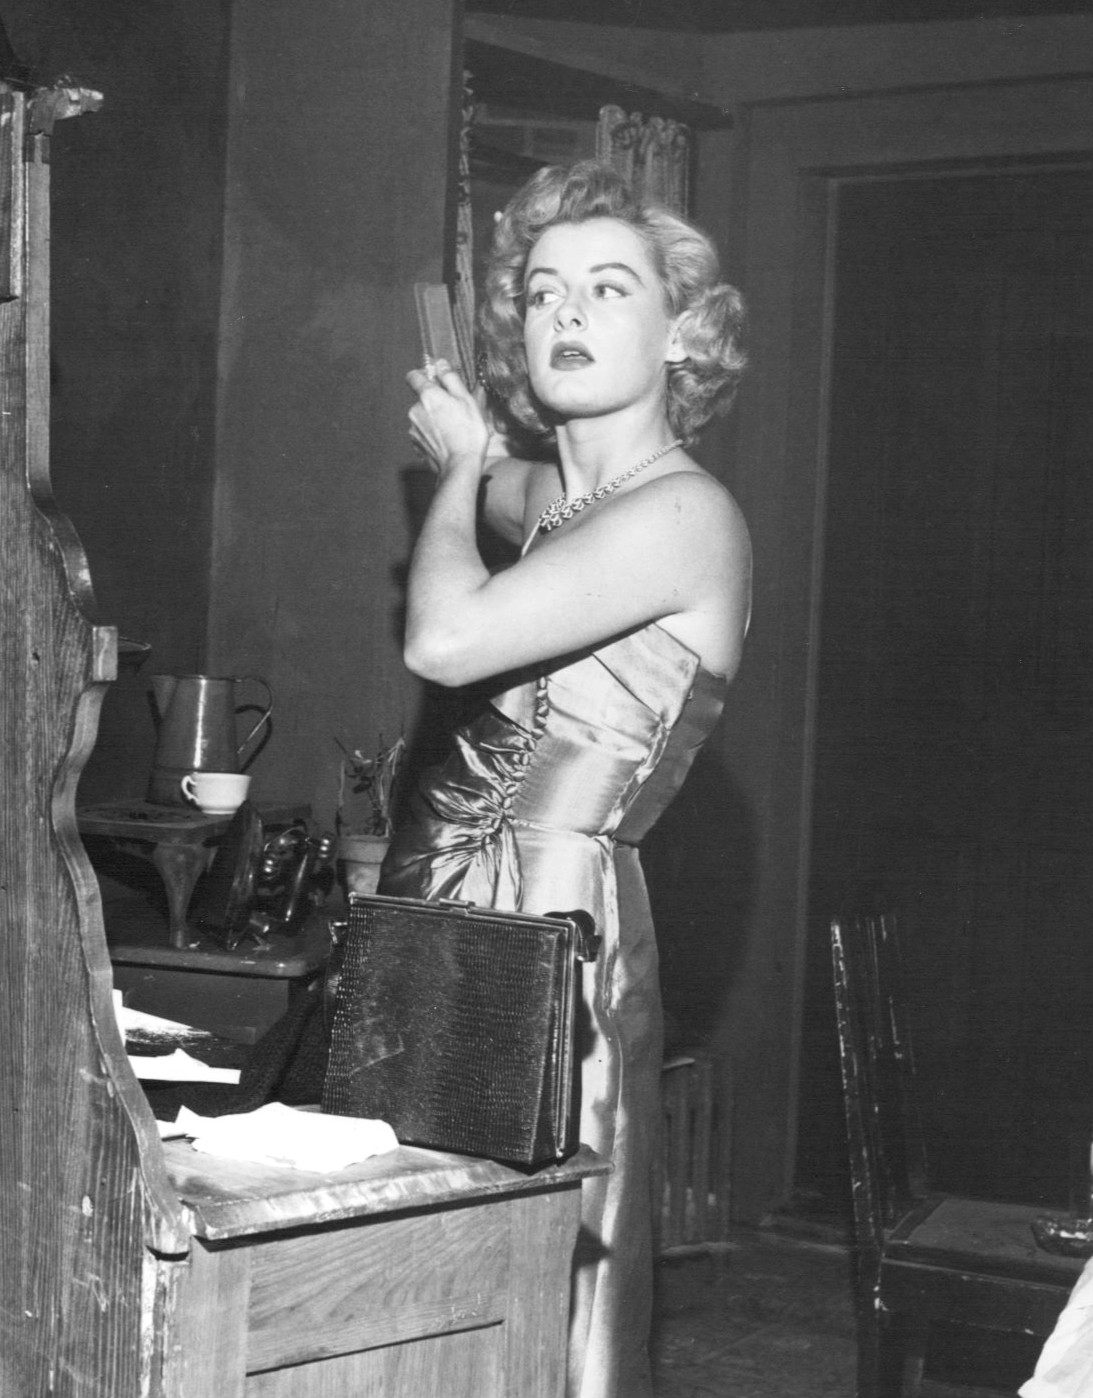 Constance Ford nude photos 2019